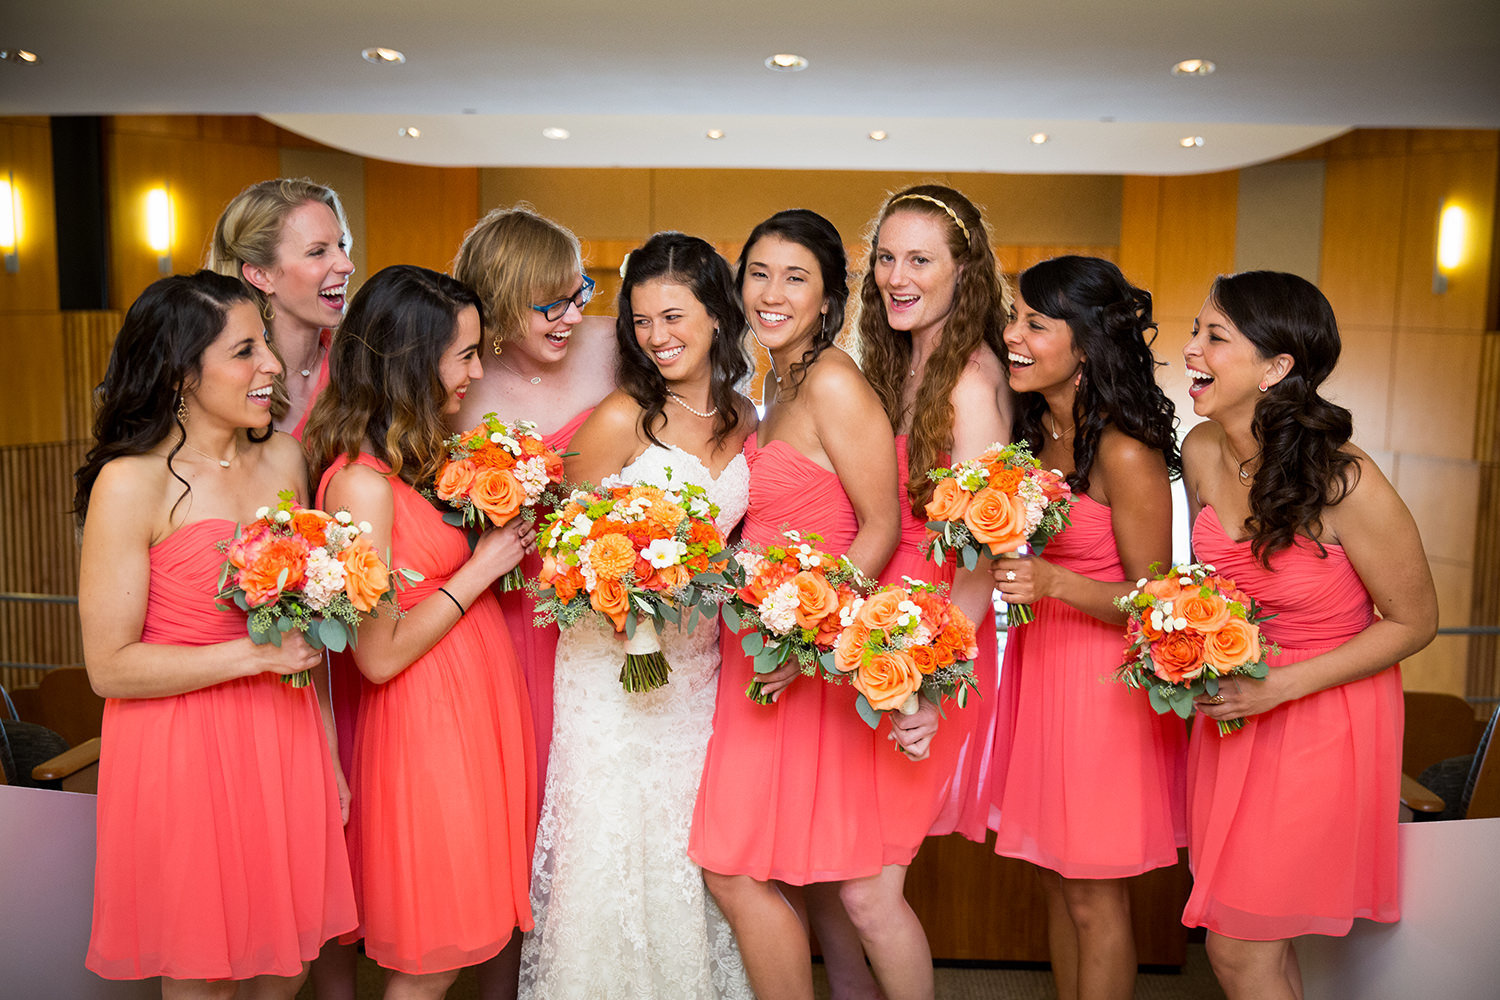 getting ready laughing with bridesmaids